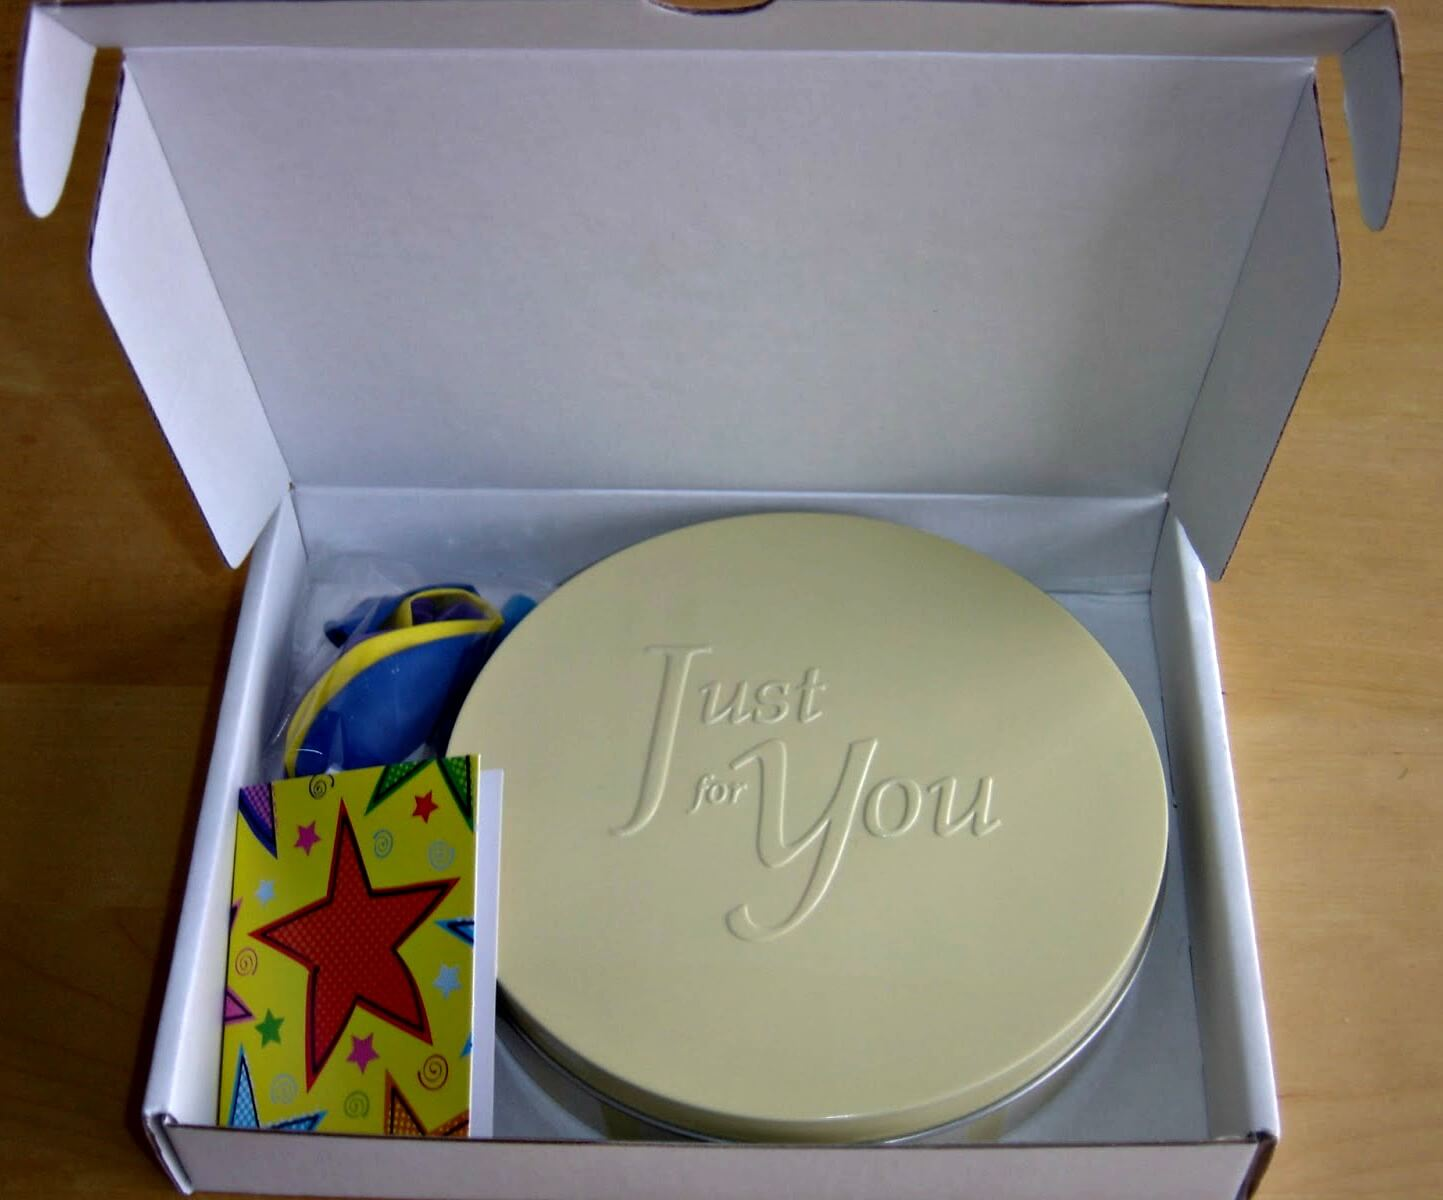 Baker Days letterbox cakes - the birthday cake in its packaging - a tin within a box.